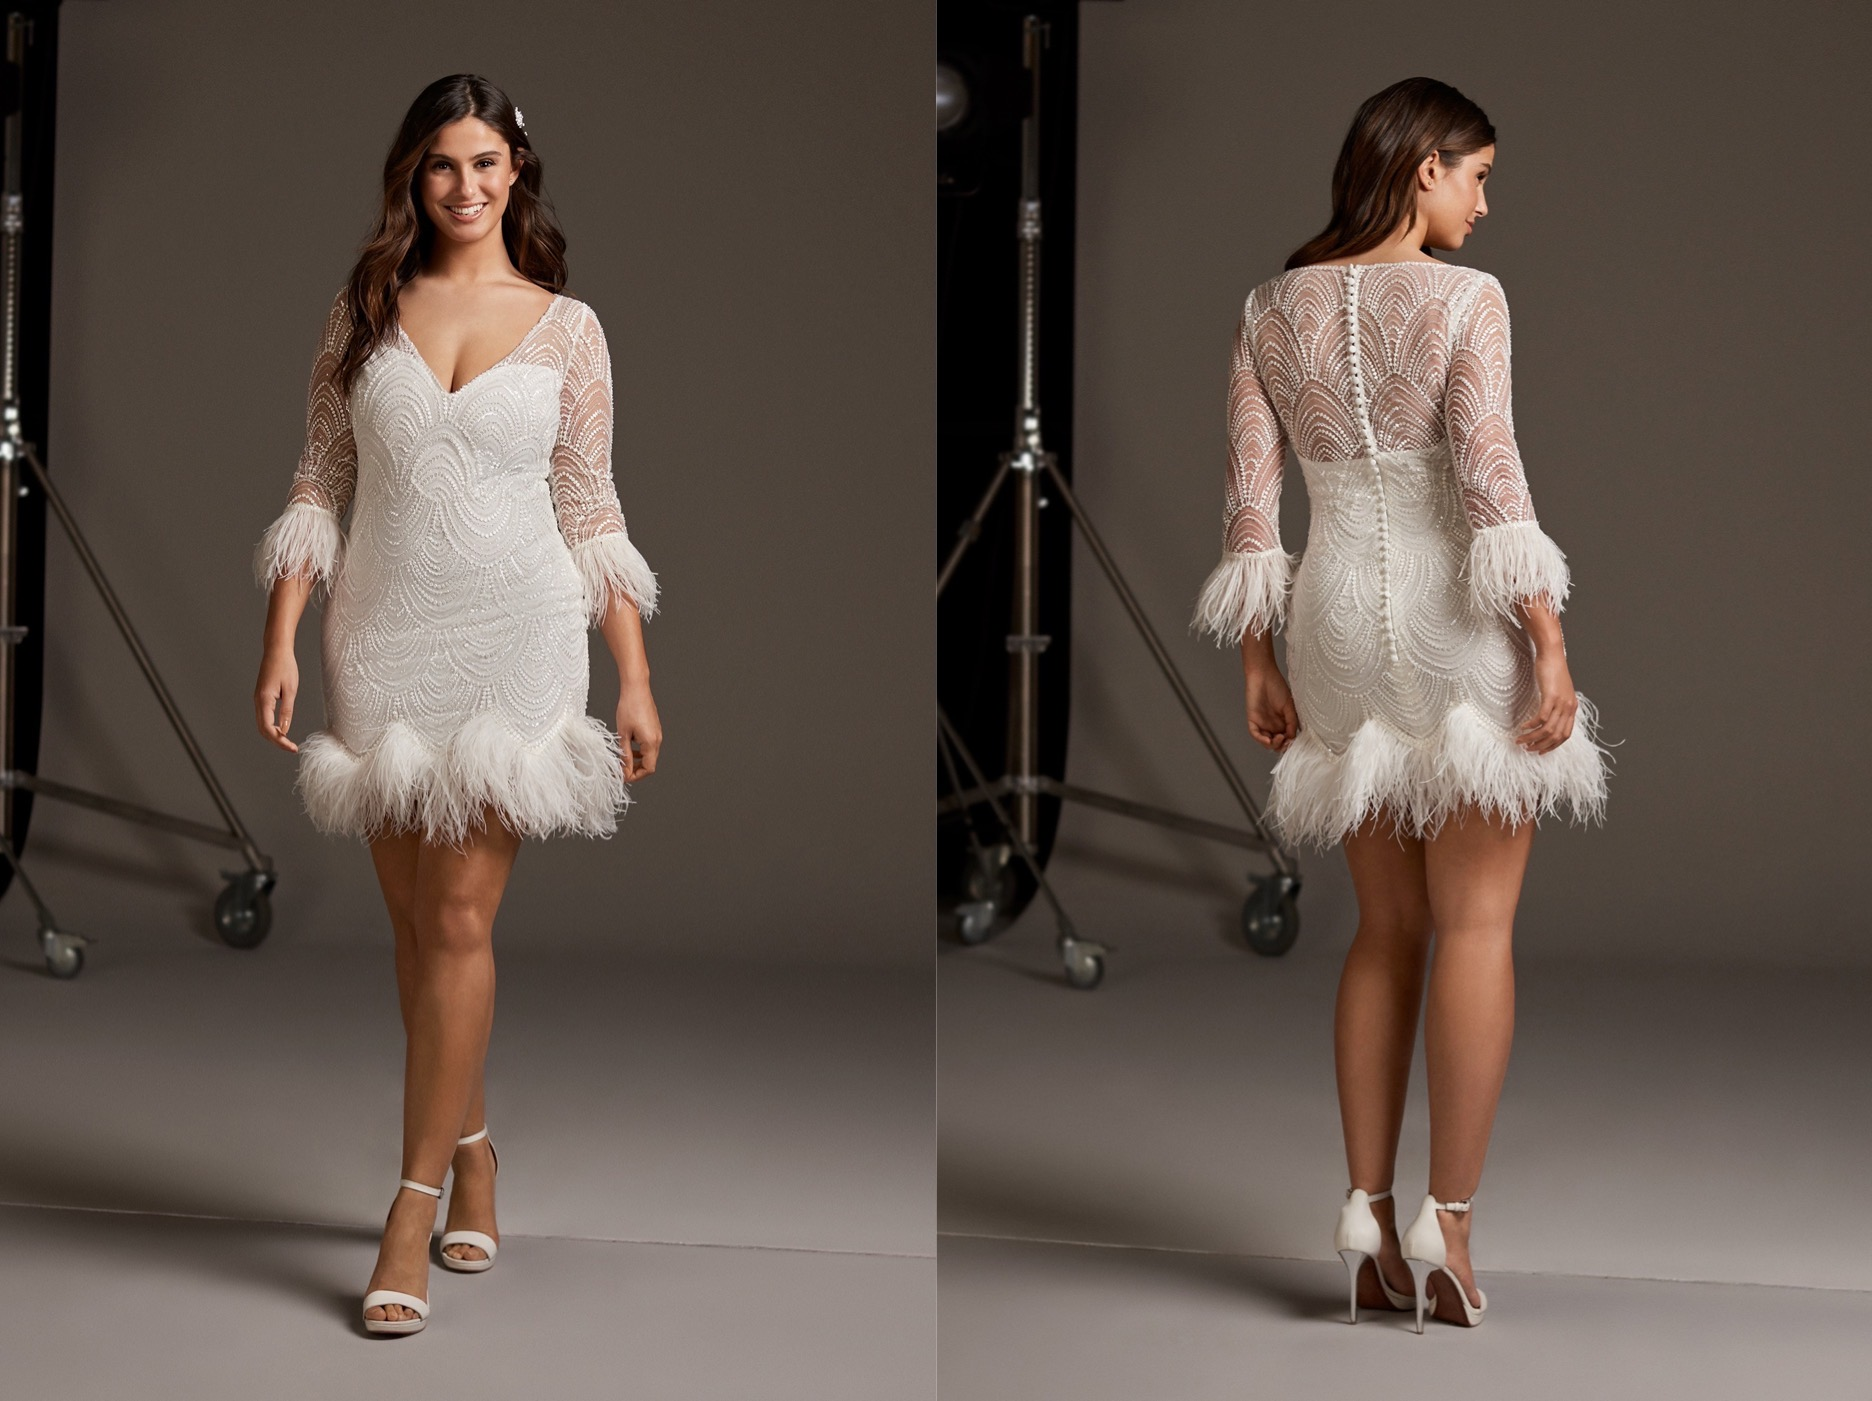 Winter Wedding - Pronovias 2019 vestido corto con mangas